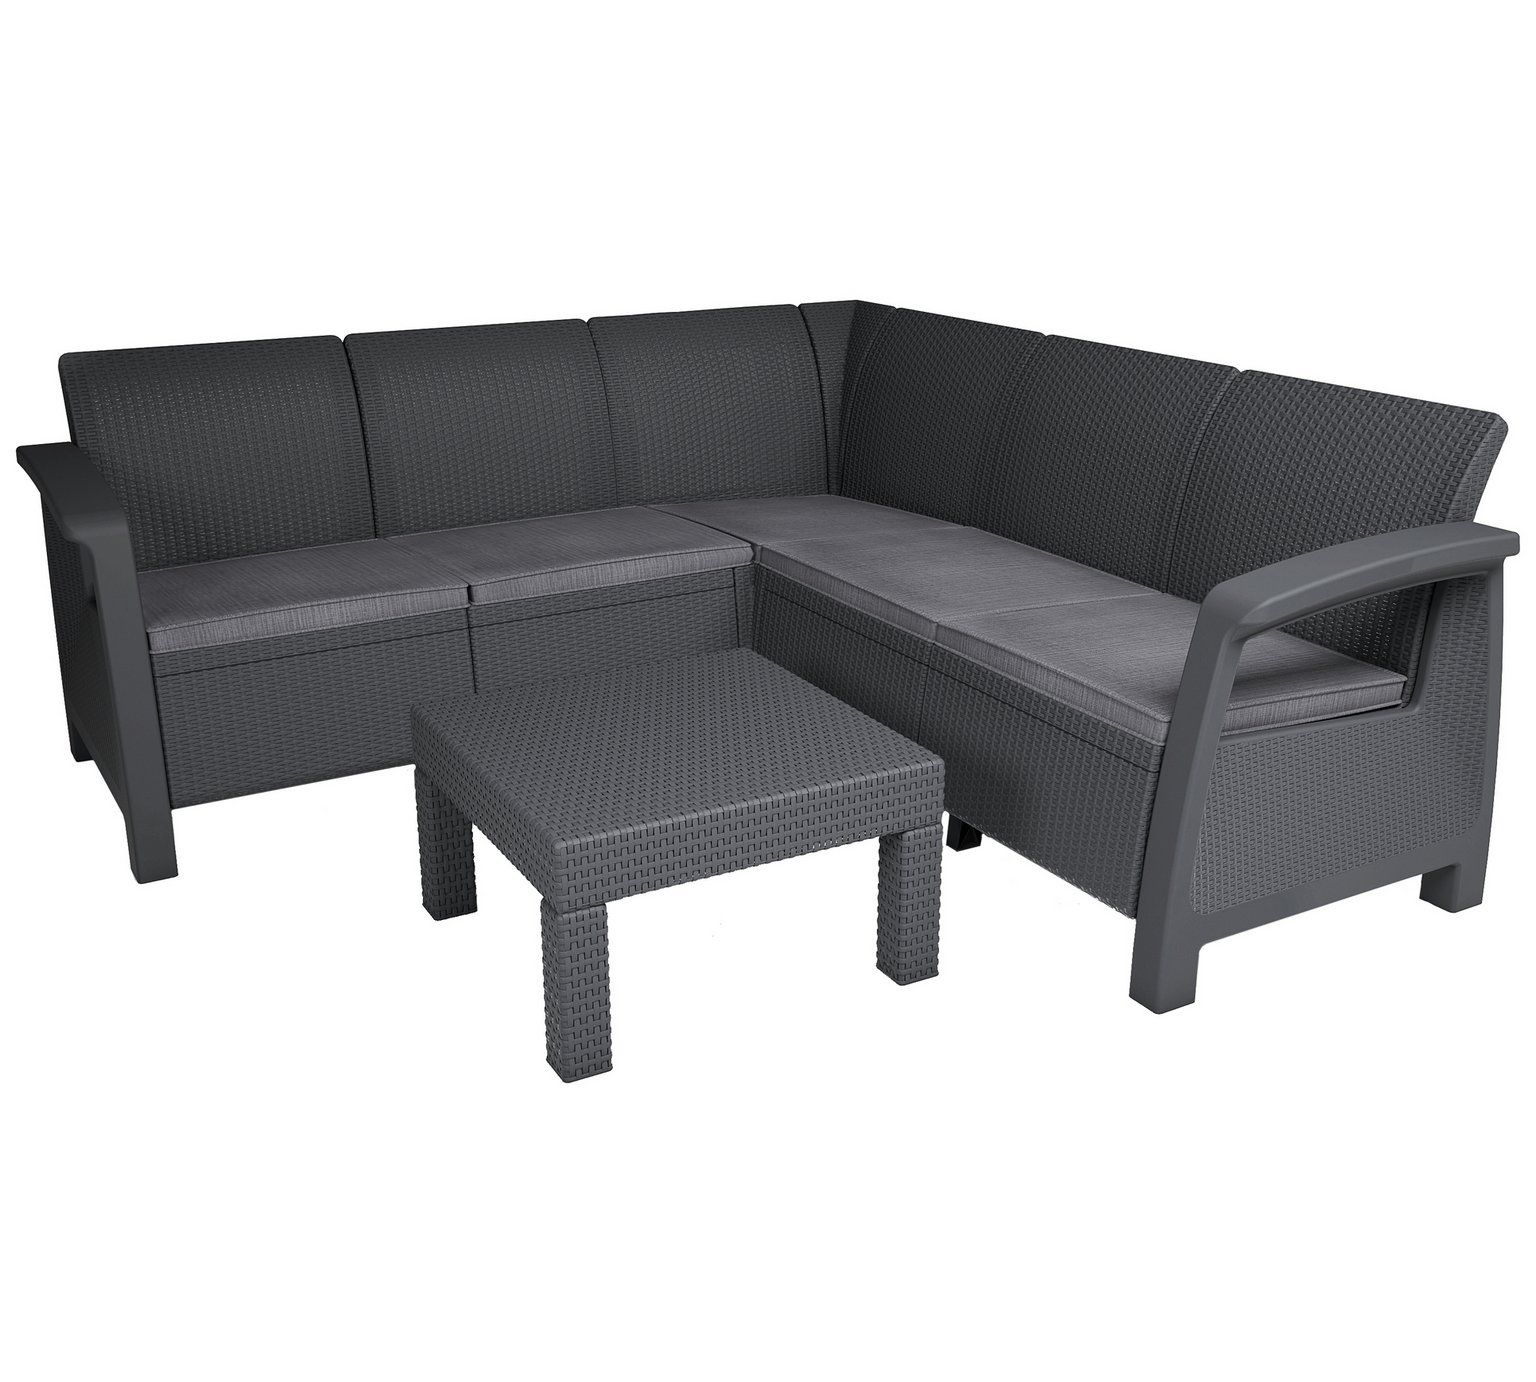 Buy Keter Bahamas Rattan 5 Seater Garden Corner Set Graphite At Argos Co Uk Visit Argos Co Uk Corner Sofa Set Parsons Dining Chairs Garden Table And Chairs